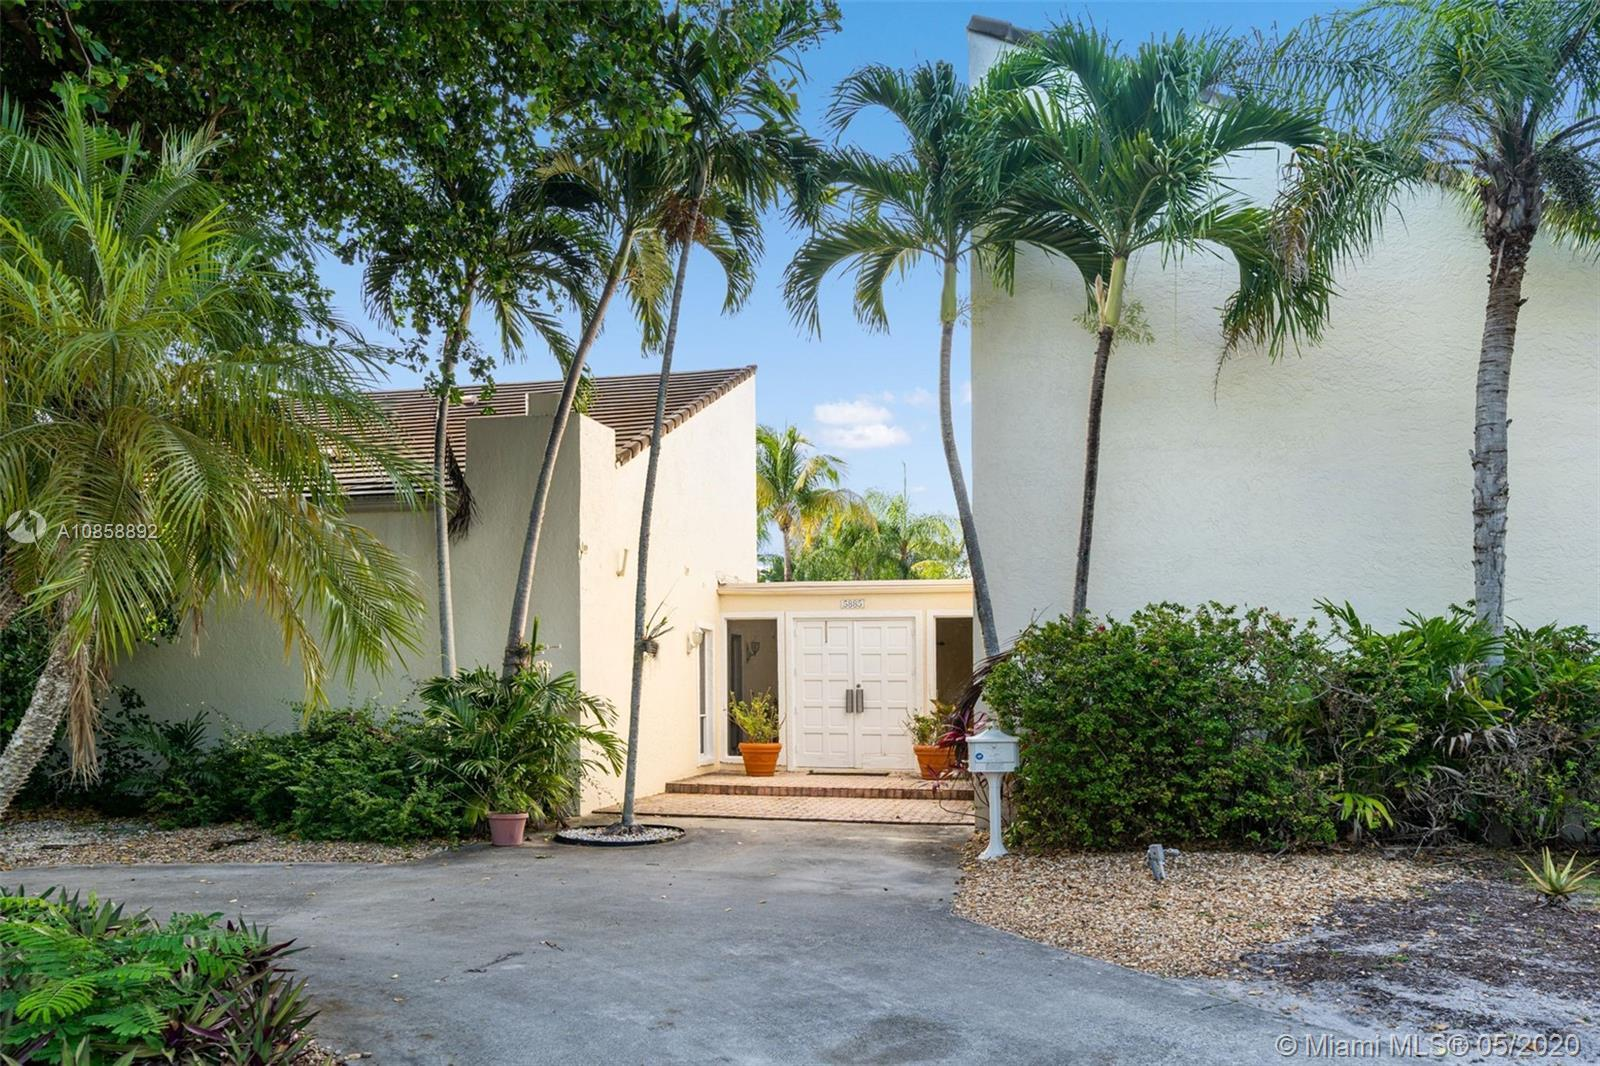 Check this captivating home with an ample backyard — located inthe heart of Pinecrest, this unique